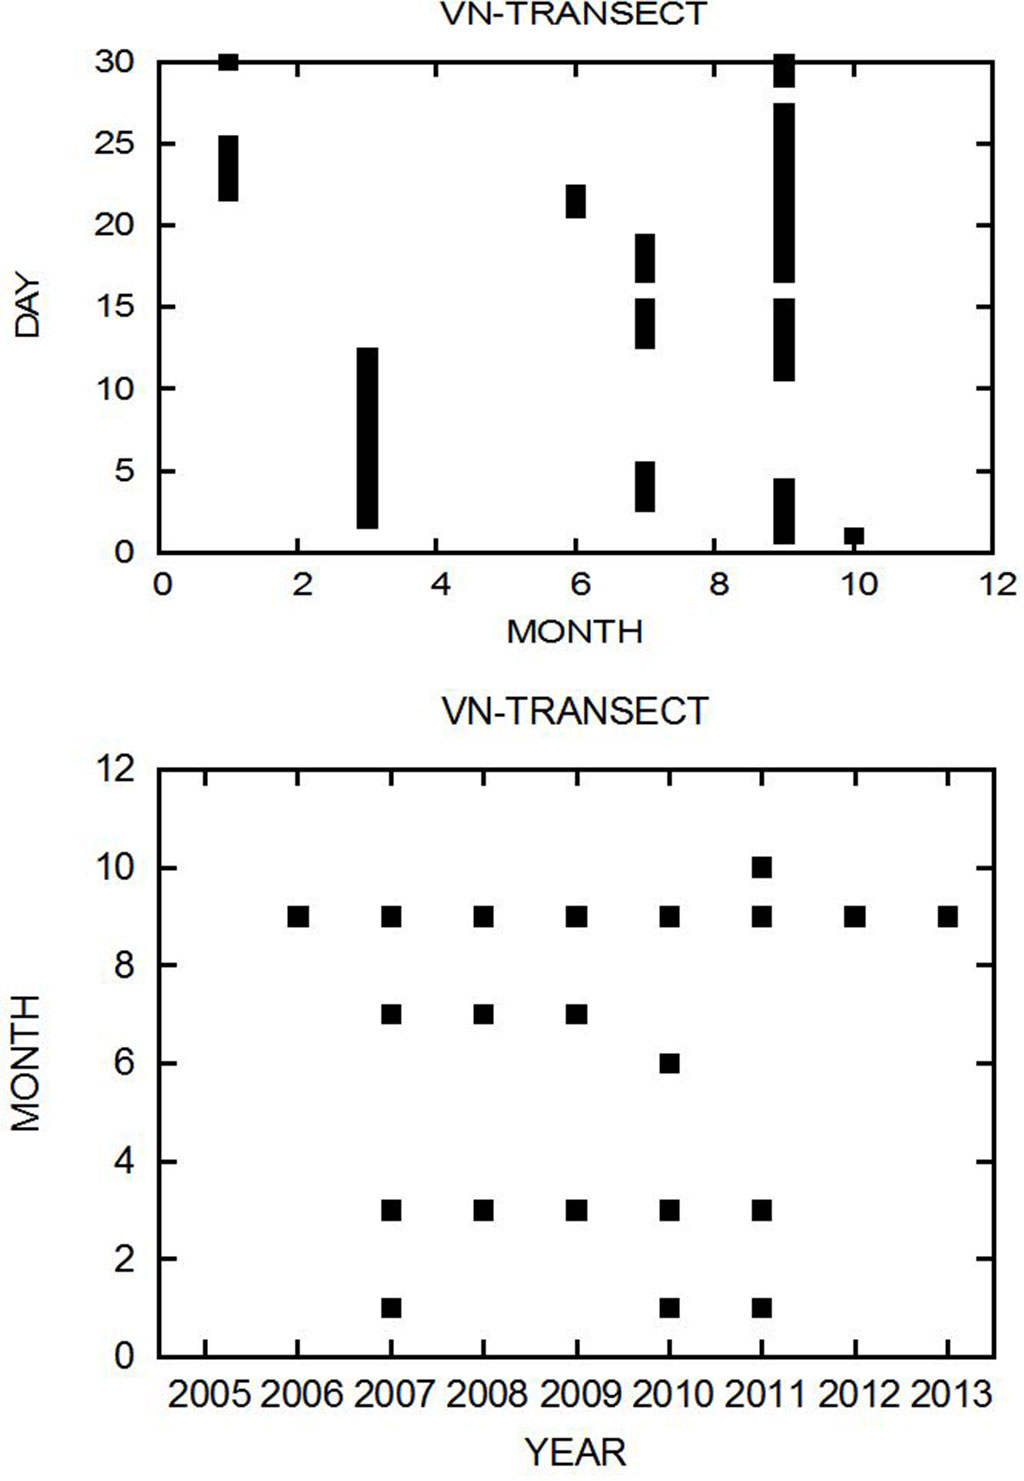 Figure 3.3.x1: Sampling times and effort for the period 2004-2013 for the VN transect.